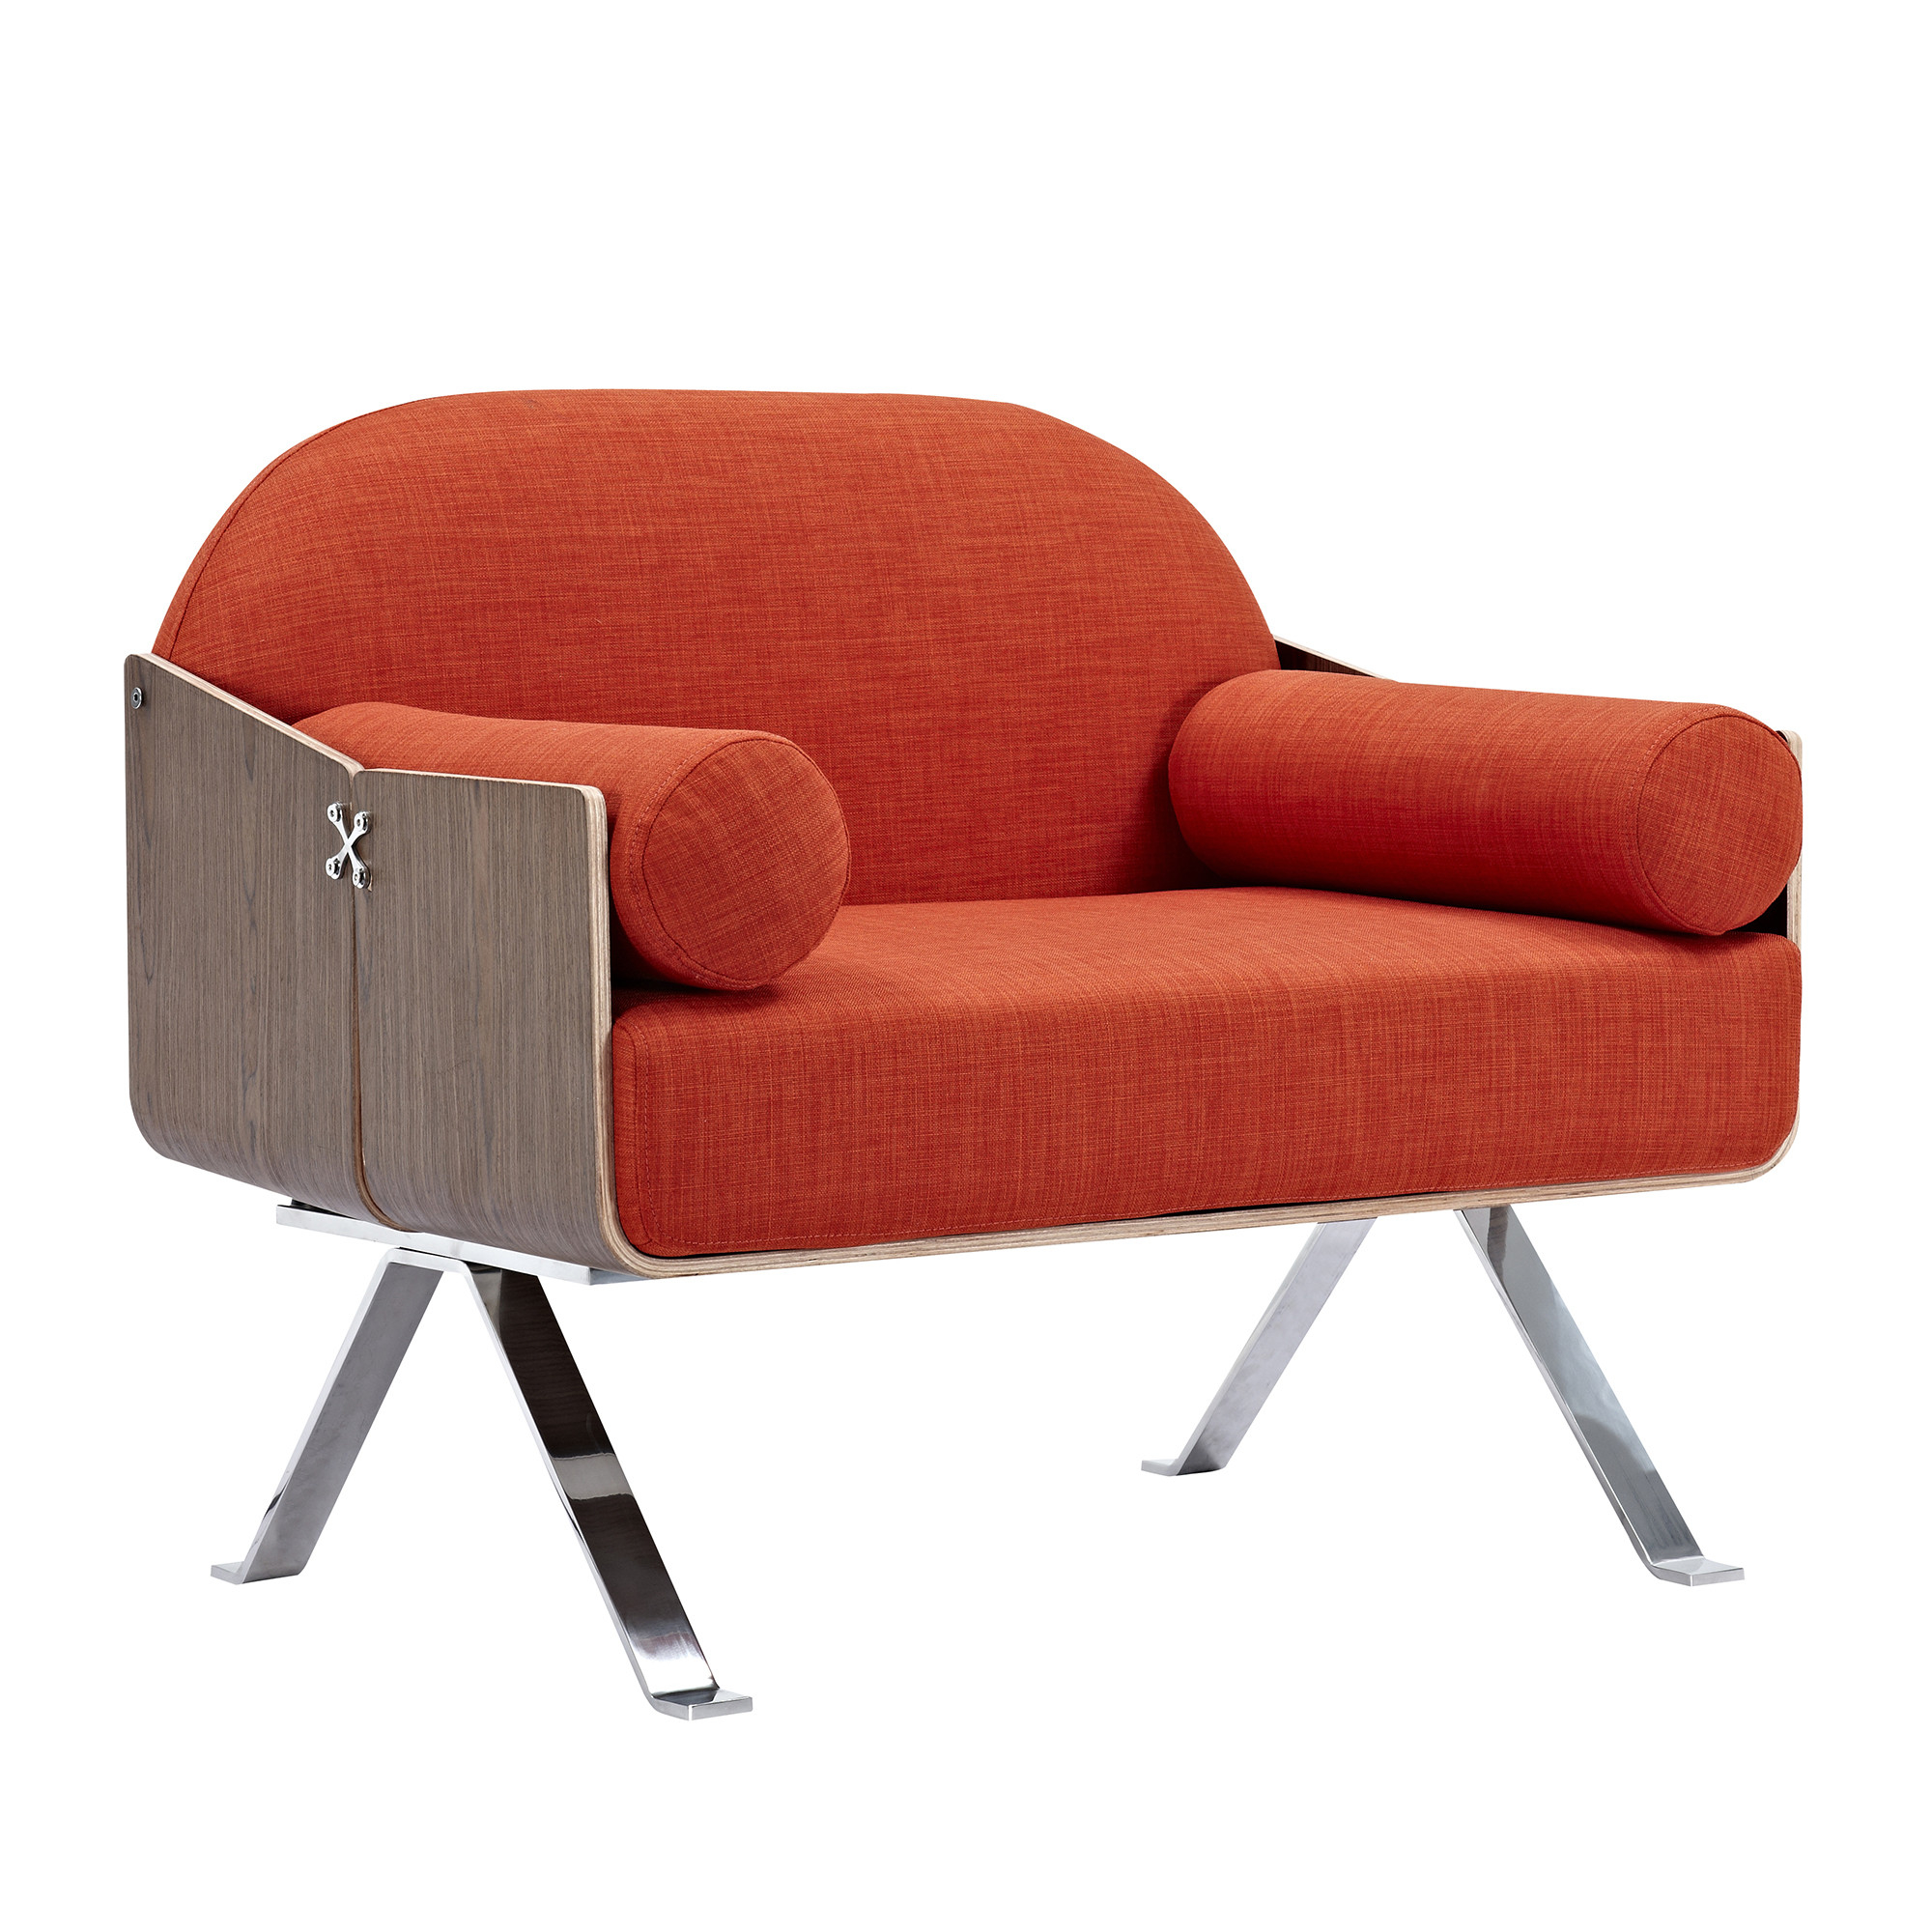 Jorn Red Chair - Natural